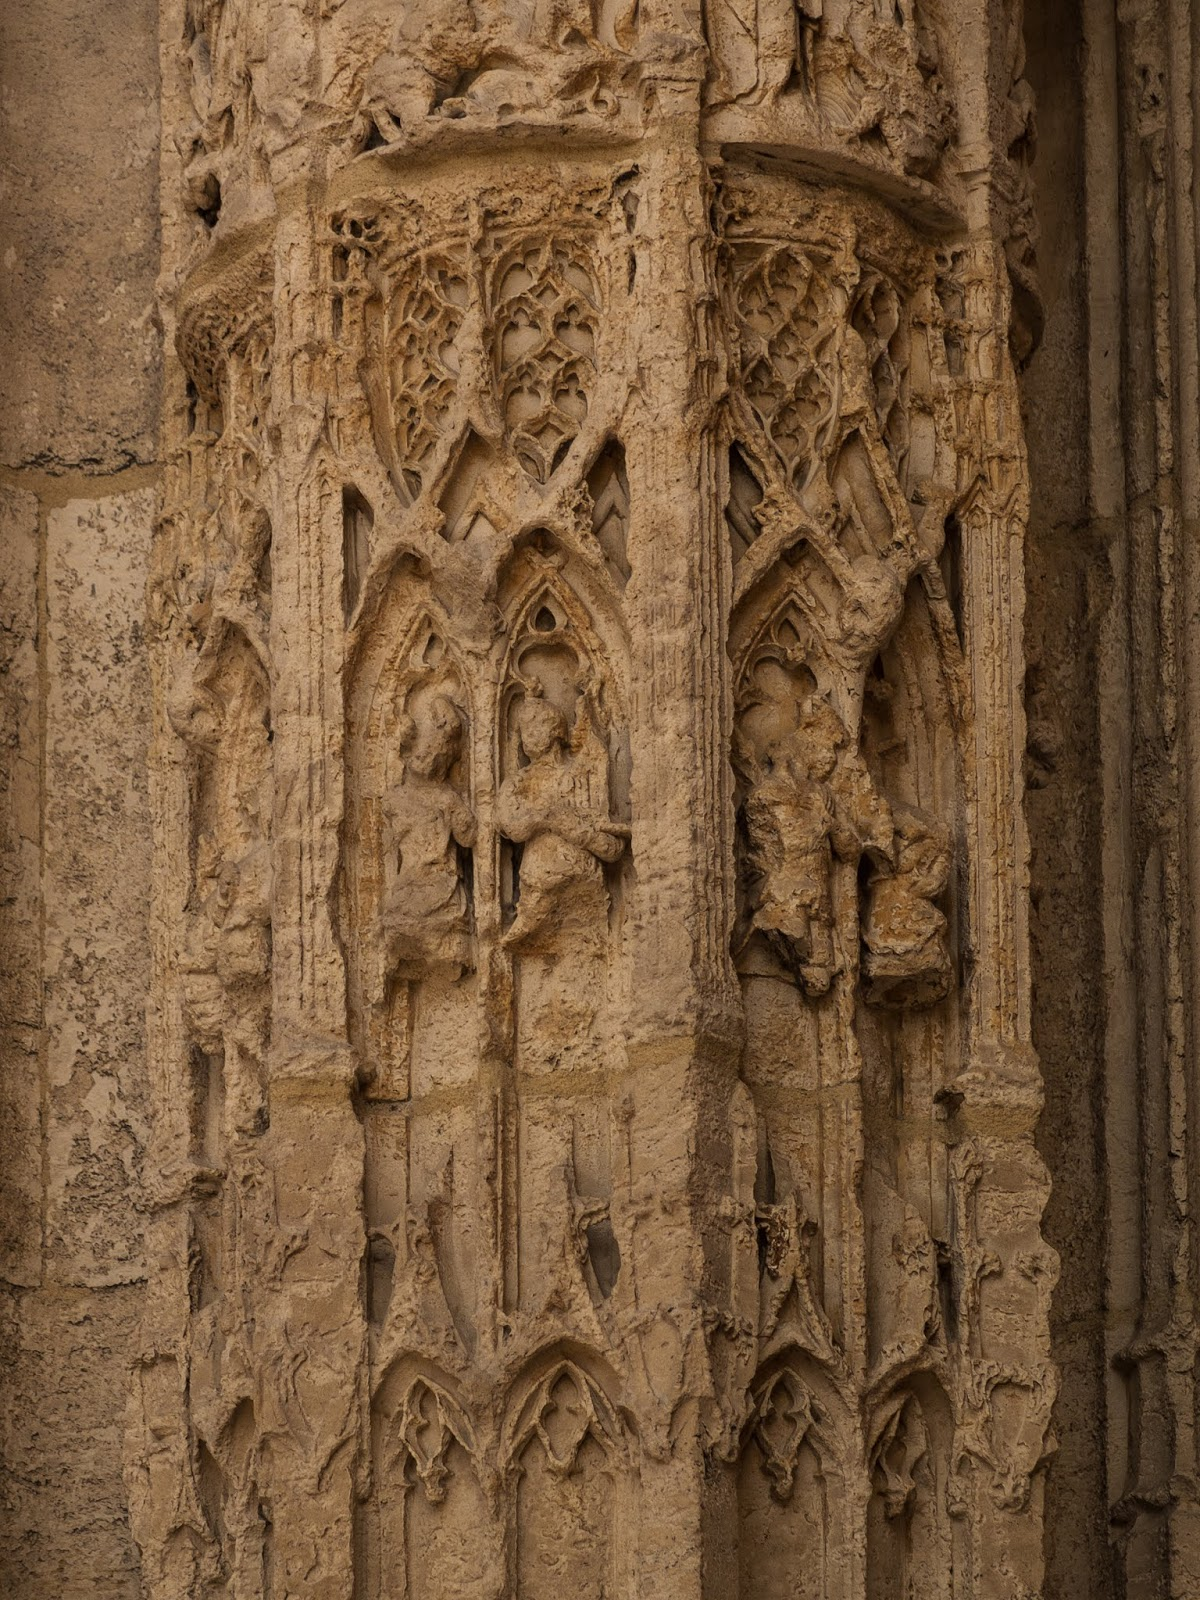 Wear and tear in the detail of the walls in Rouen's Cathedral in Northern France.